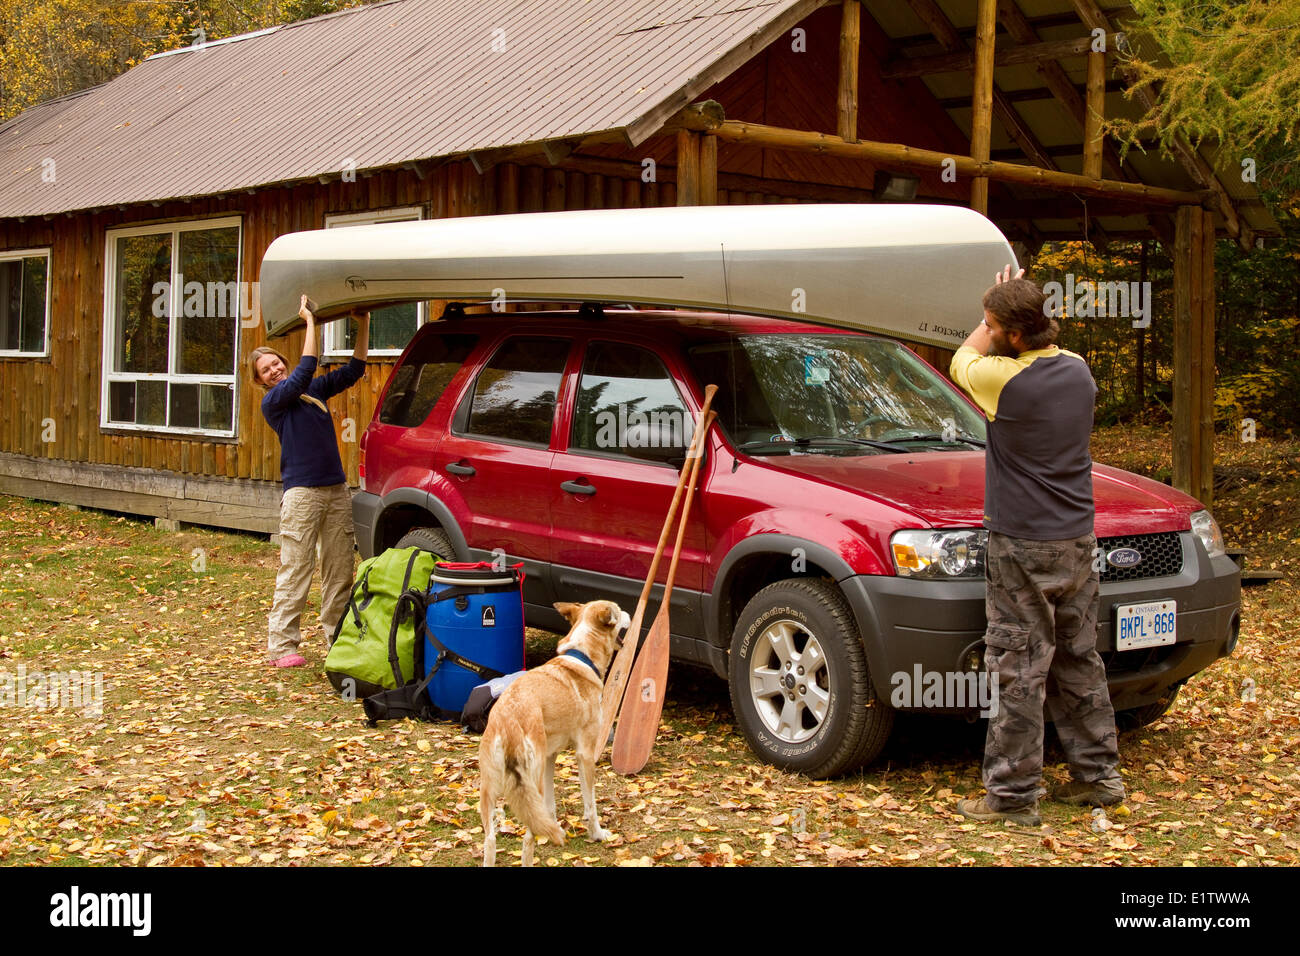 Young couple load canoe on roof of vehicle at cottage near South River, Algonquin Park, Ontario, Canada. - Stock Image